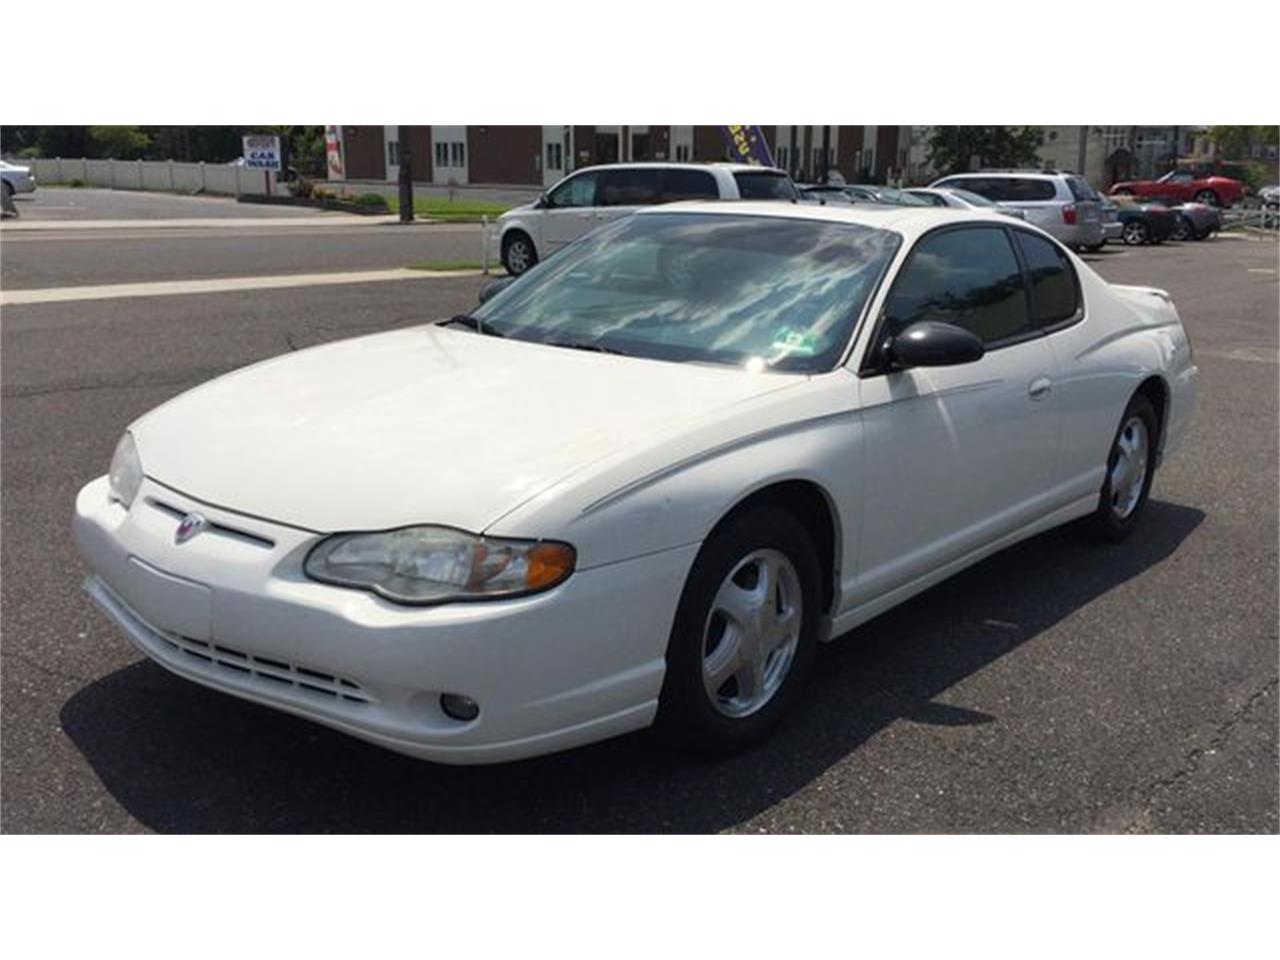 2005 Chevrolet Monte Carlo for sale in Woodbury, NJ – photo 5